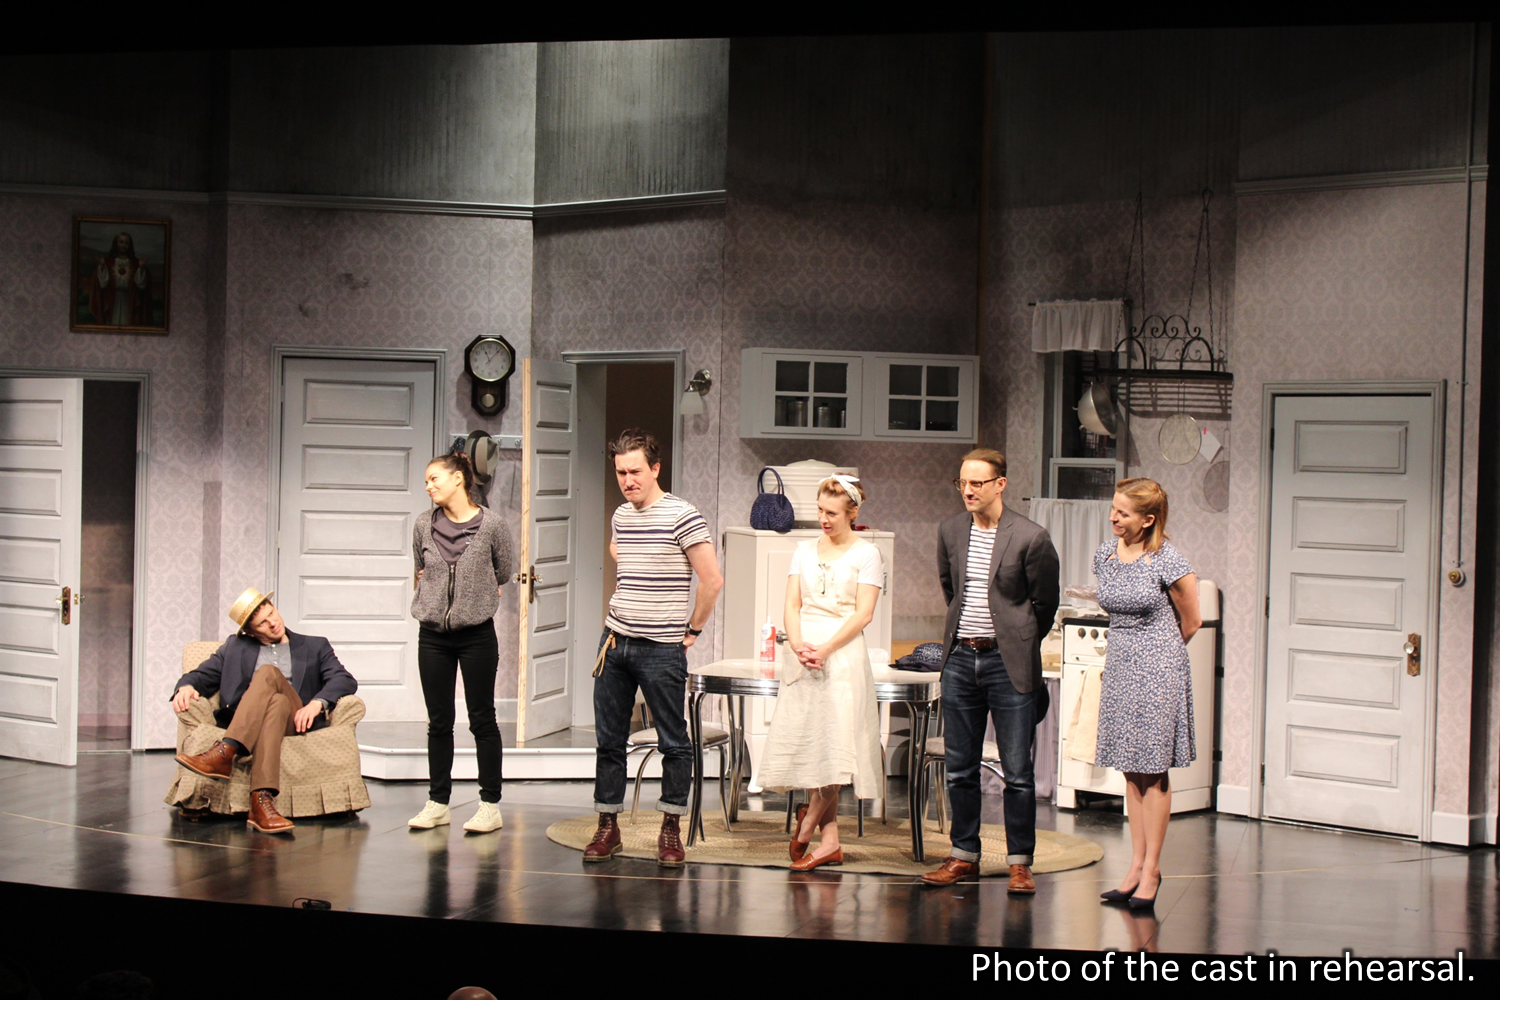 Photo of the cast of The Panties, The Partner and The Profit in rehearsal.